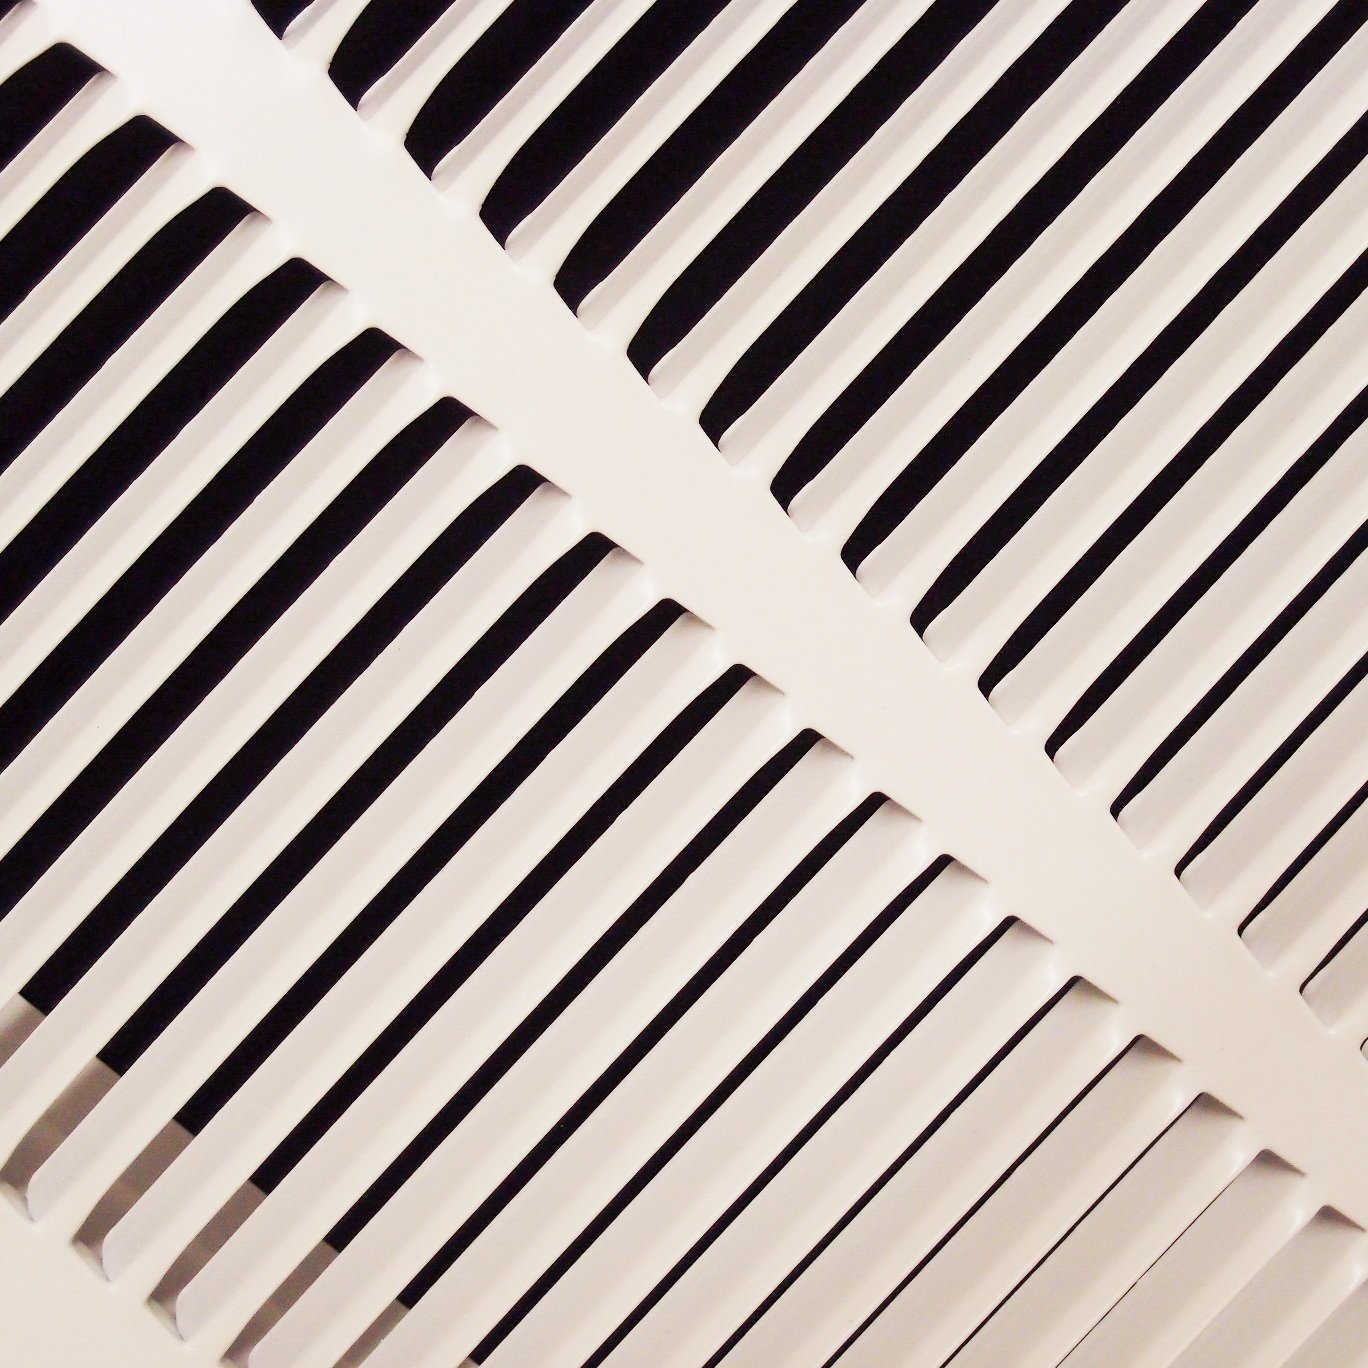 14'' X 20 Steel Return Air Filter Grille for 1'' Filter - Fixed Hinged - ceiling Recommended - HVAC DUCT COVER - Flat Stamped Face - White [Outer Dimensions: 16.5''w X 22.5''h] by HVAC Premium (Image #8)